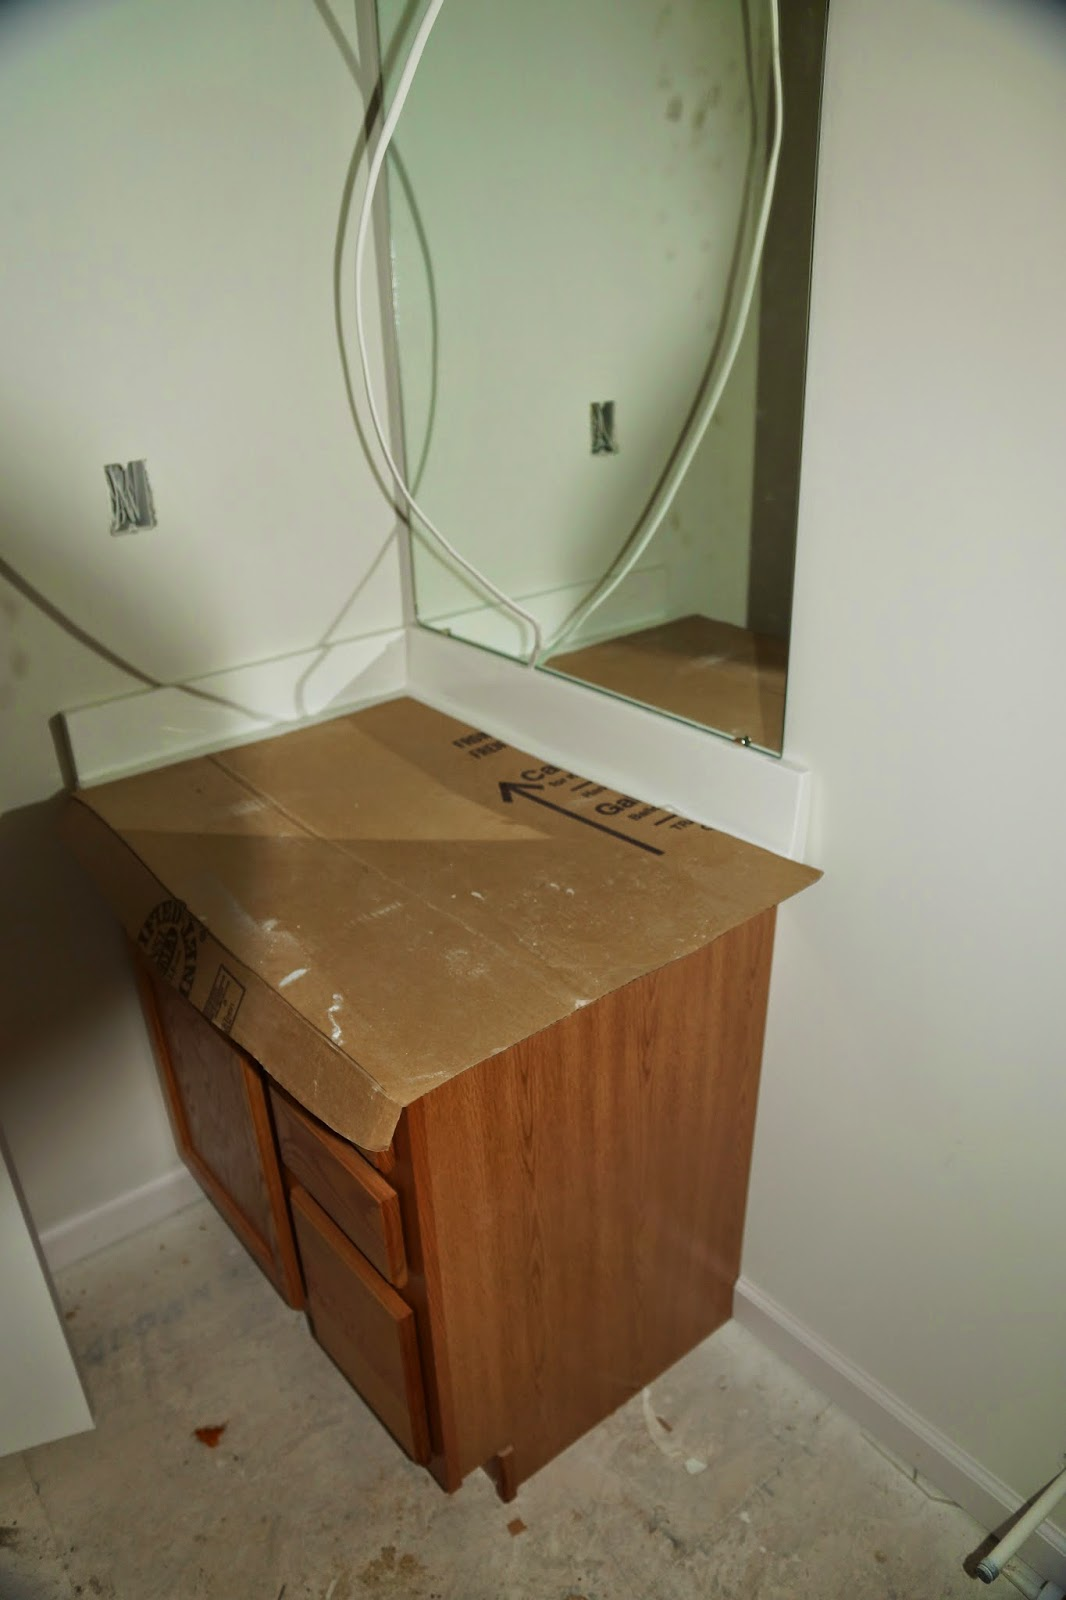 Picture of the upstairs hallway bathroom cabinet